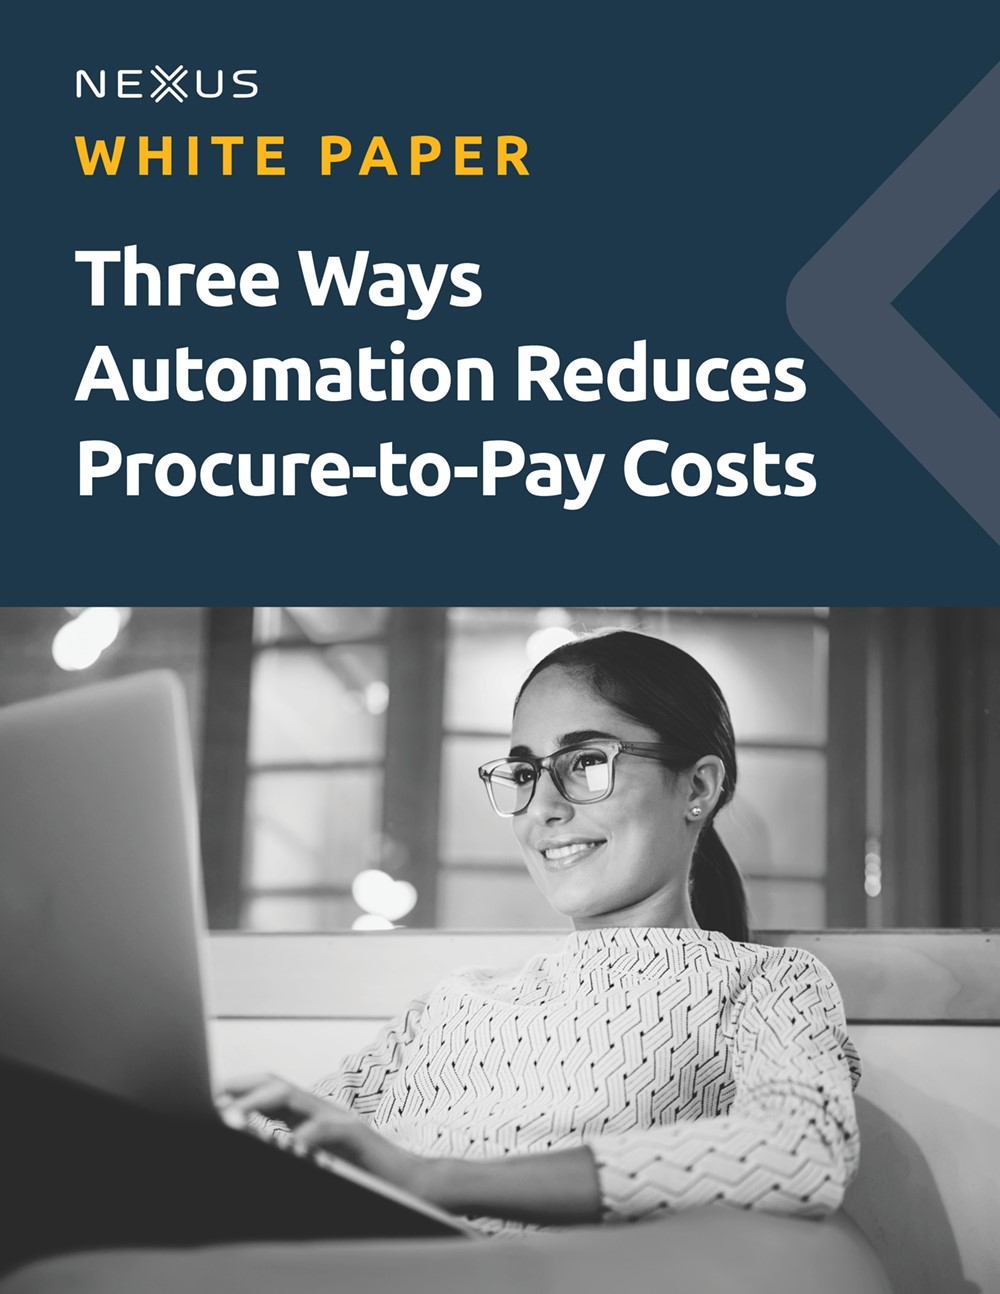 Three Ways Automation Reduces Costs Thumbnail 2.jpg